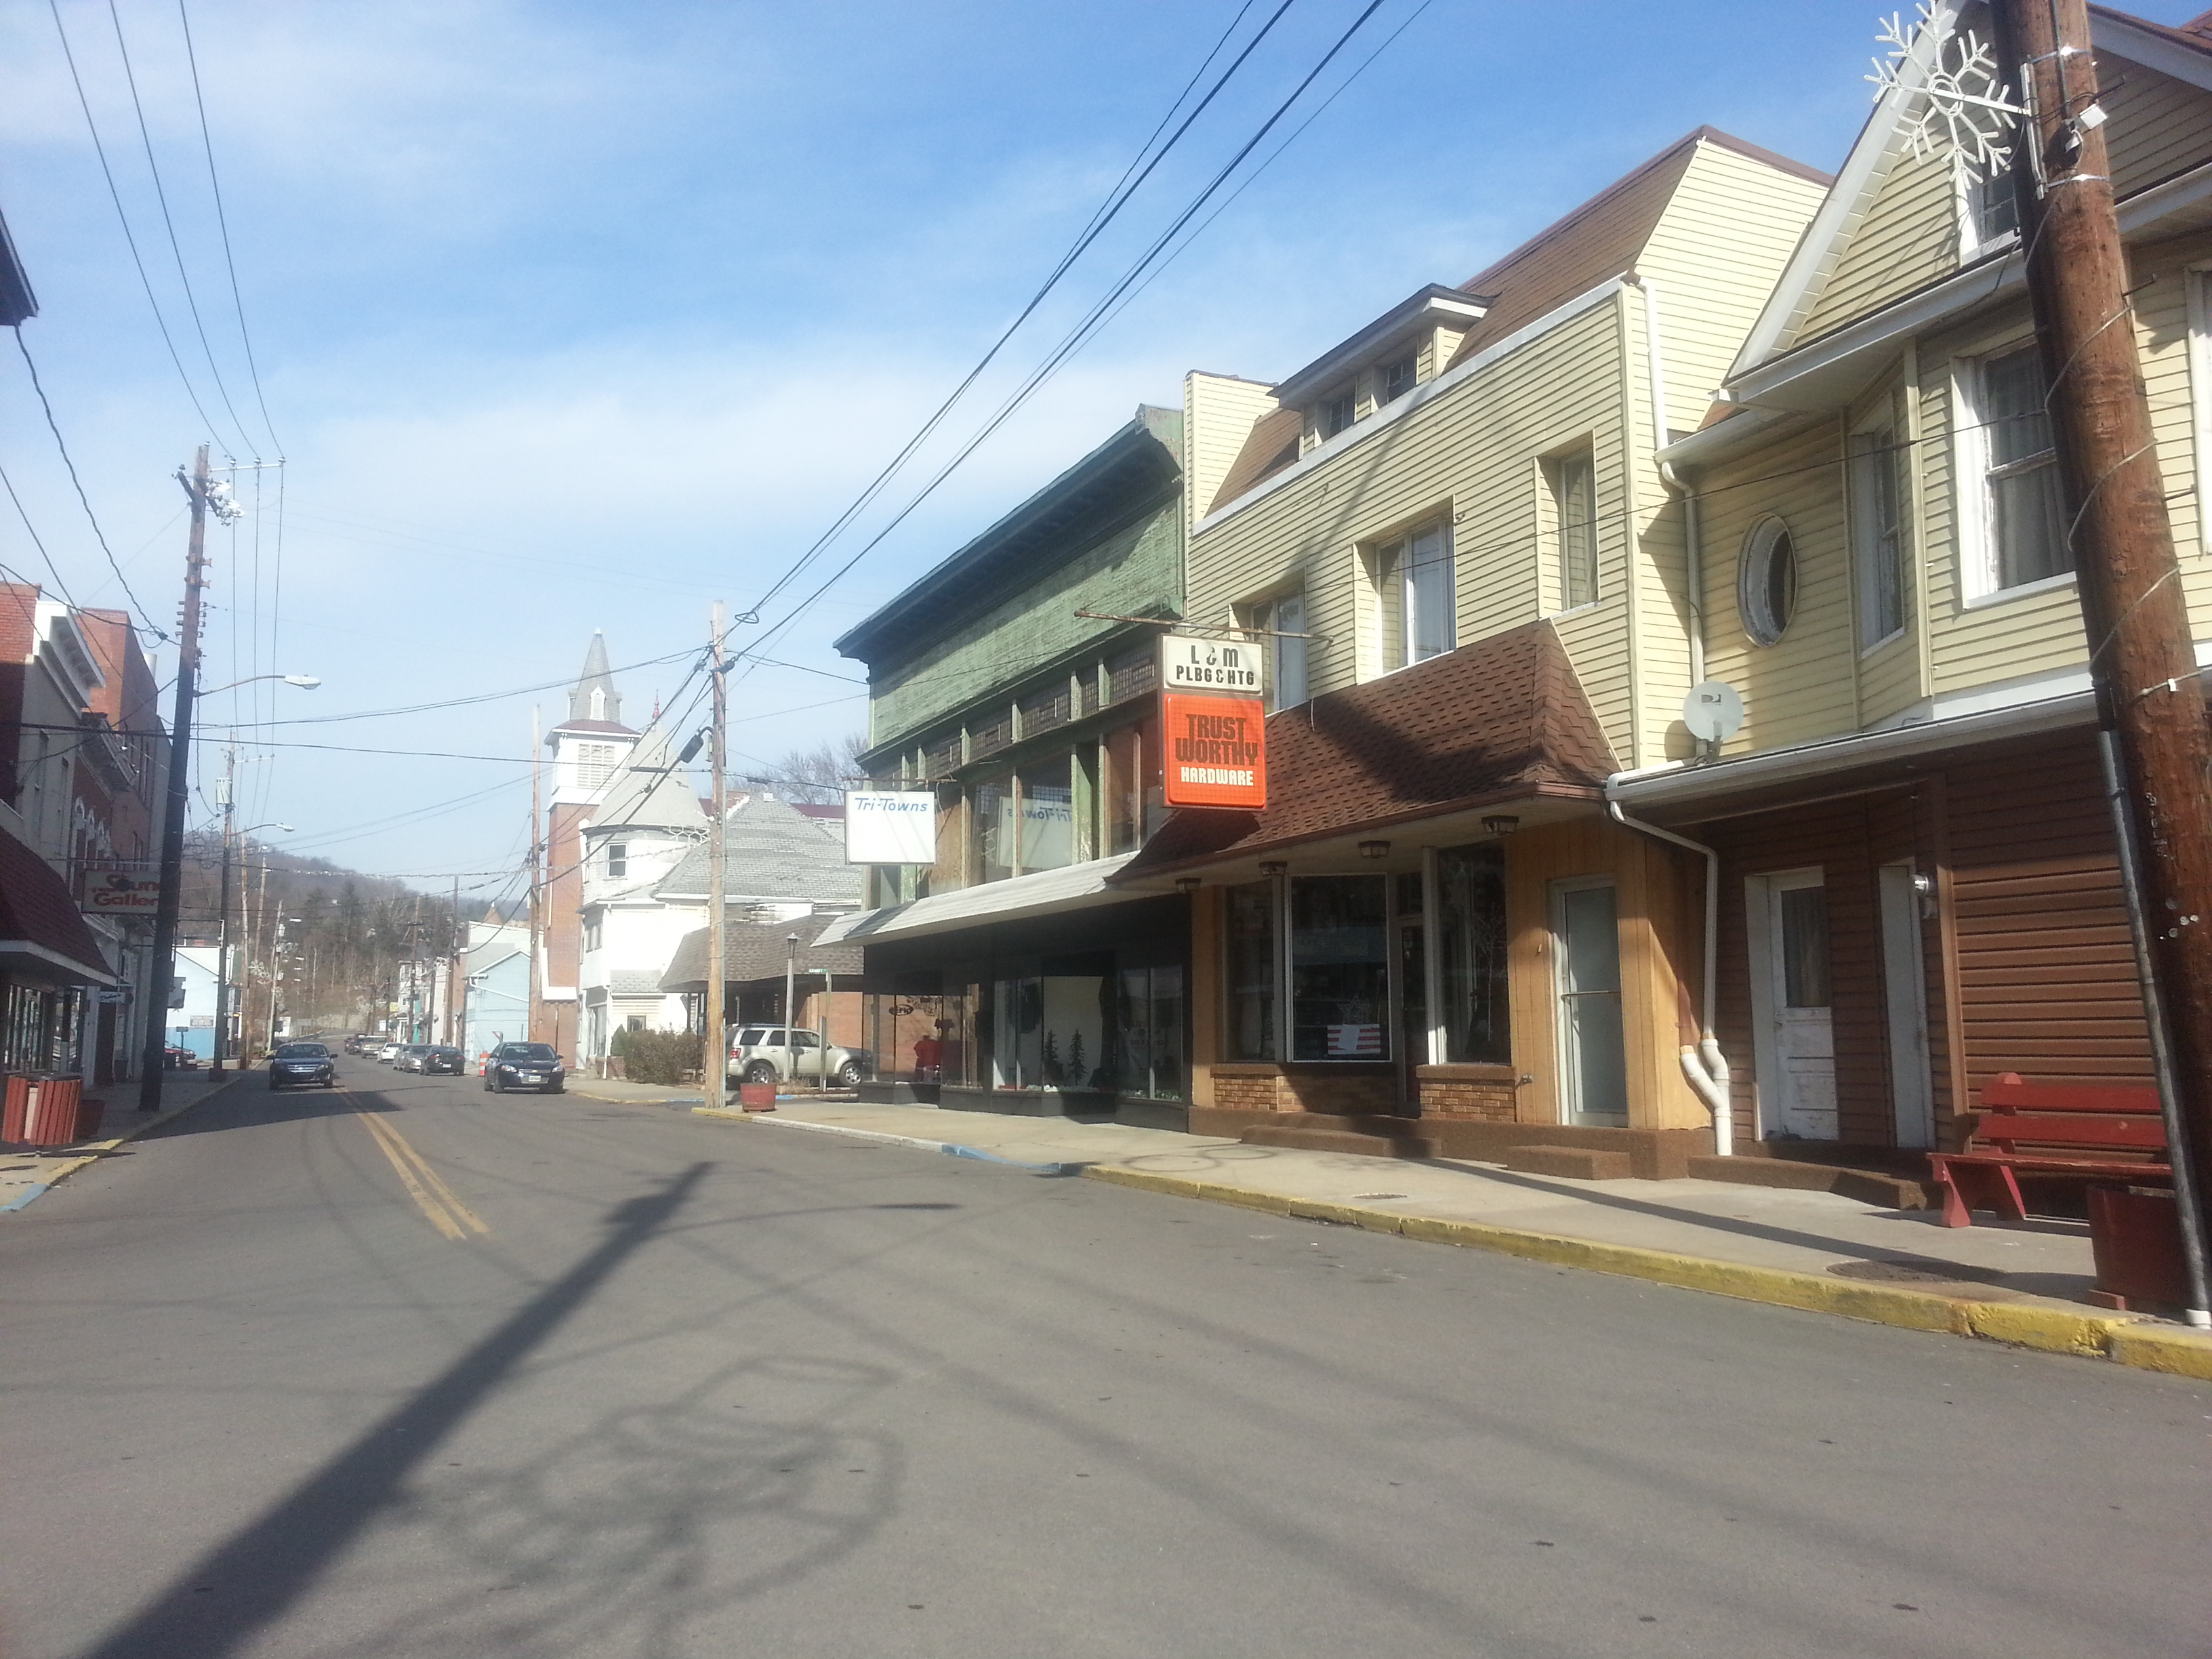 Historic West Virginia town